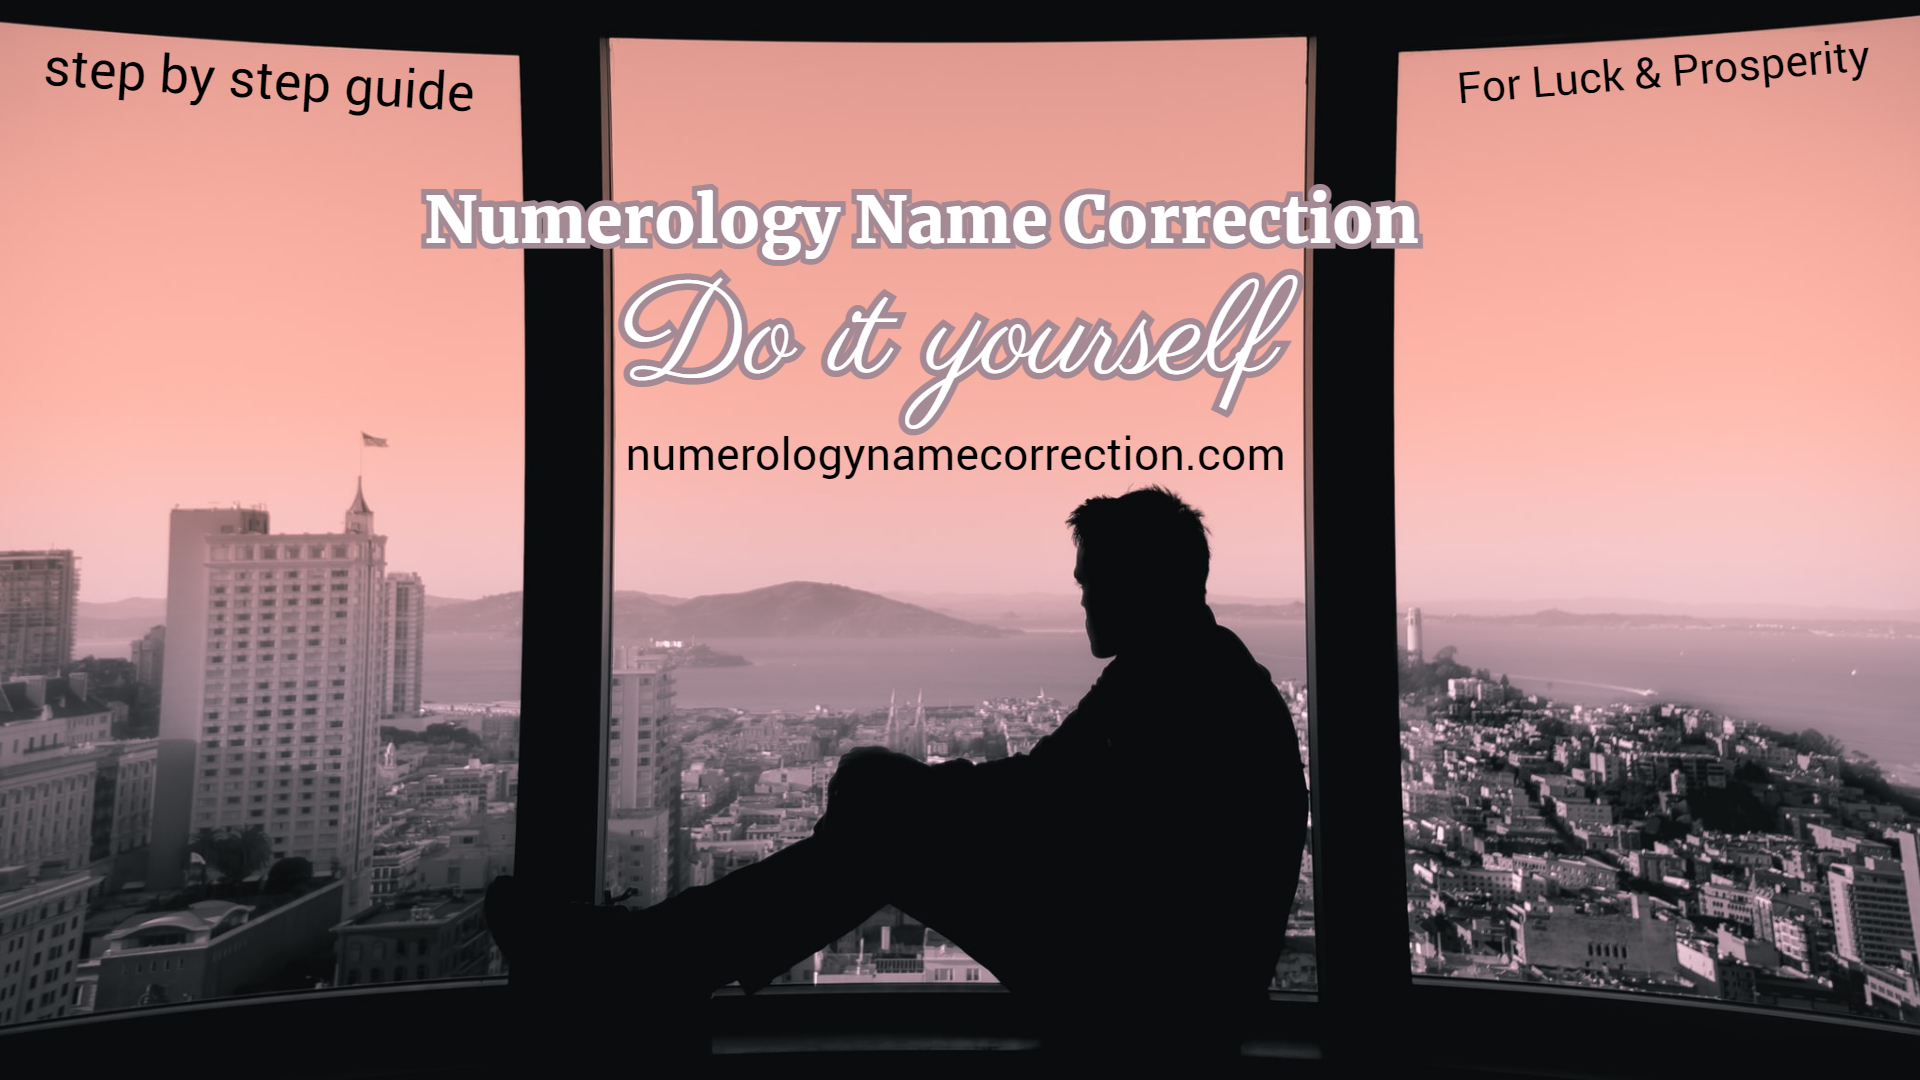 numerology name correction